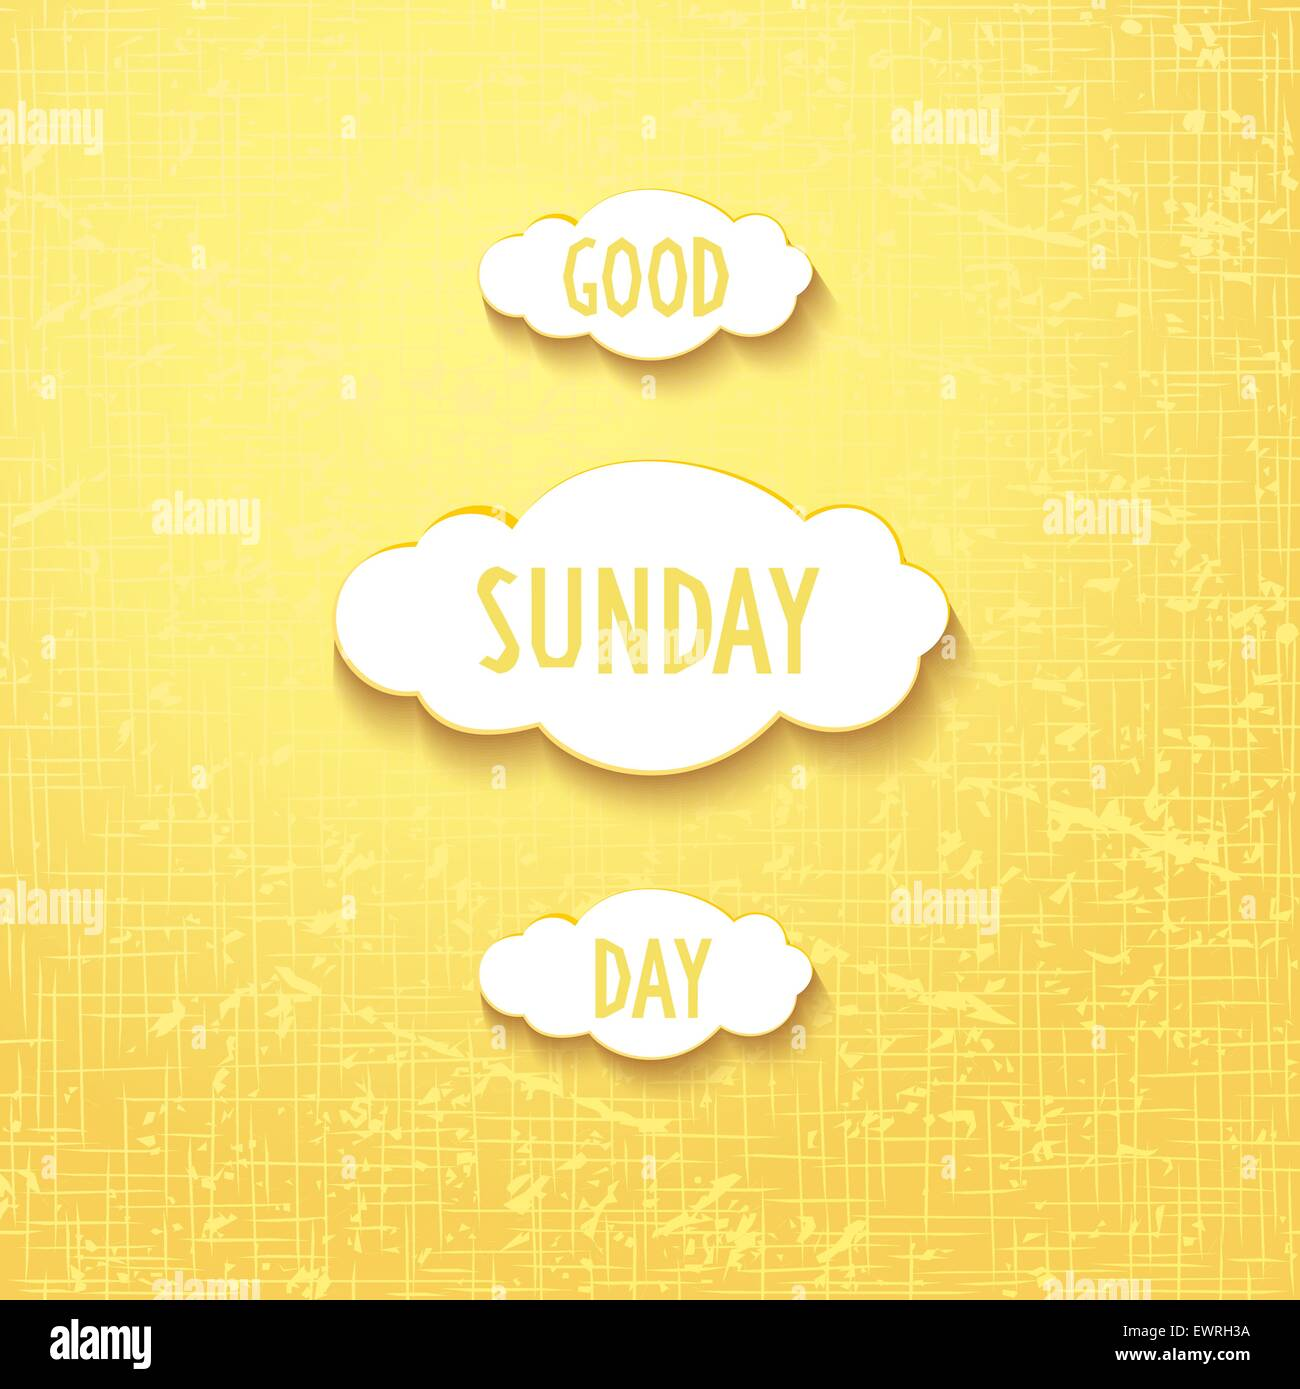 Joyful clouds with quote - good sunday day, on gunny background. Vector eps 10 - Stock Vector